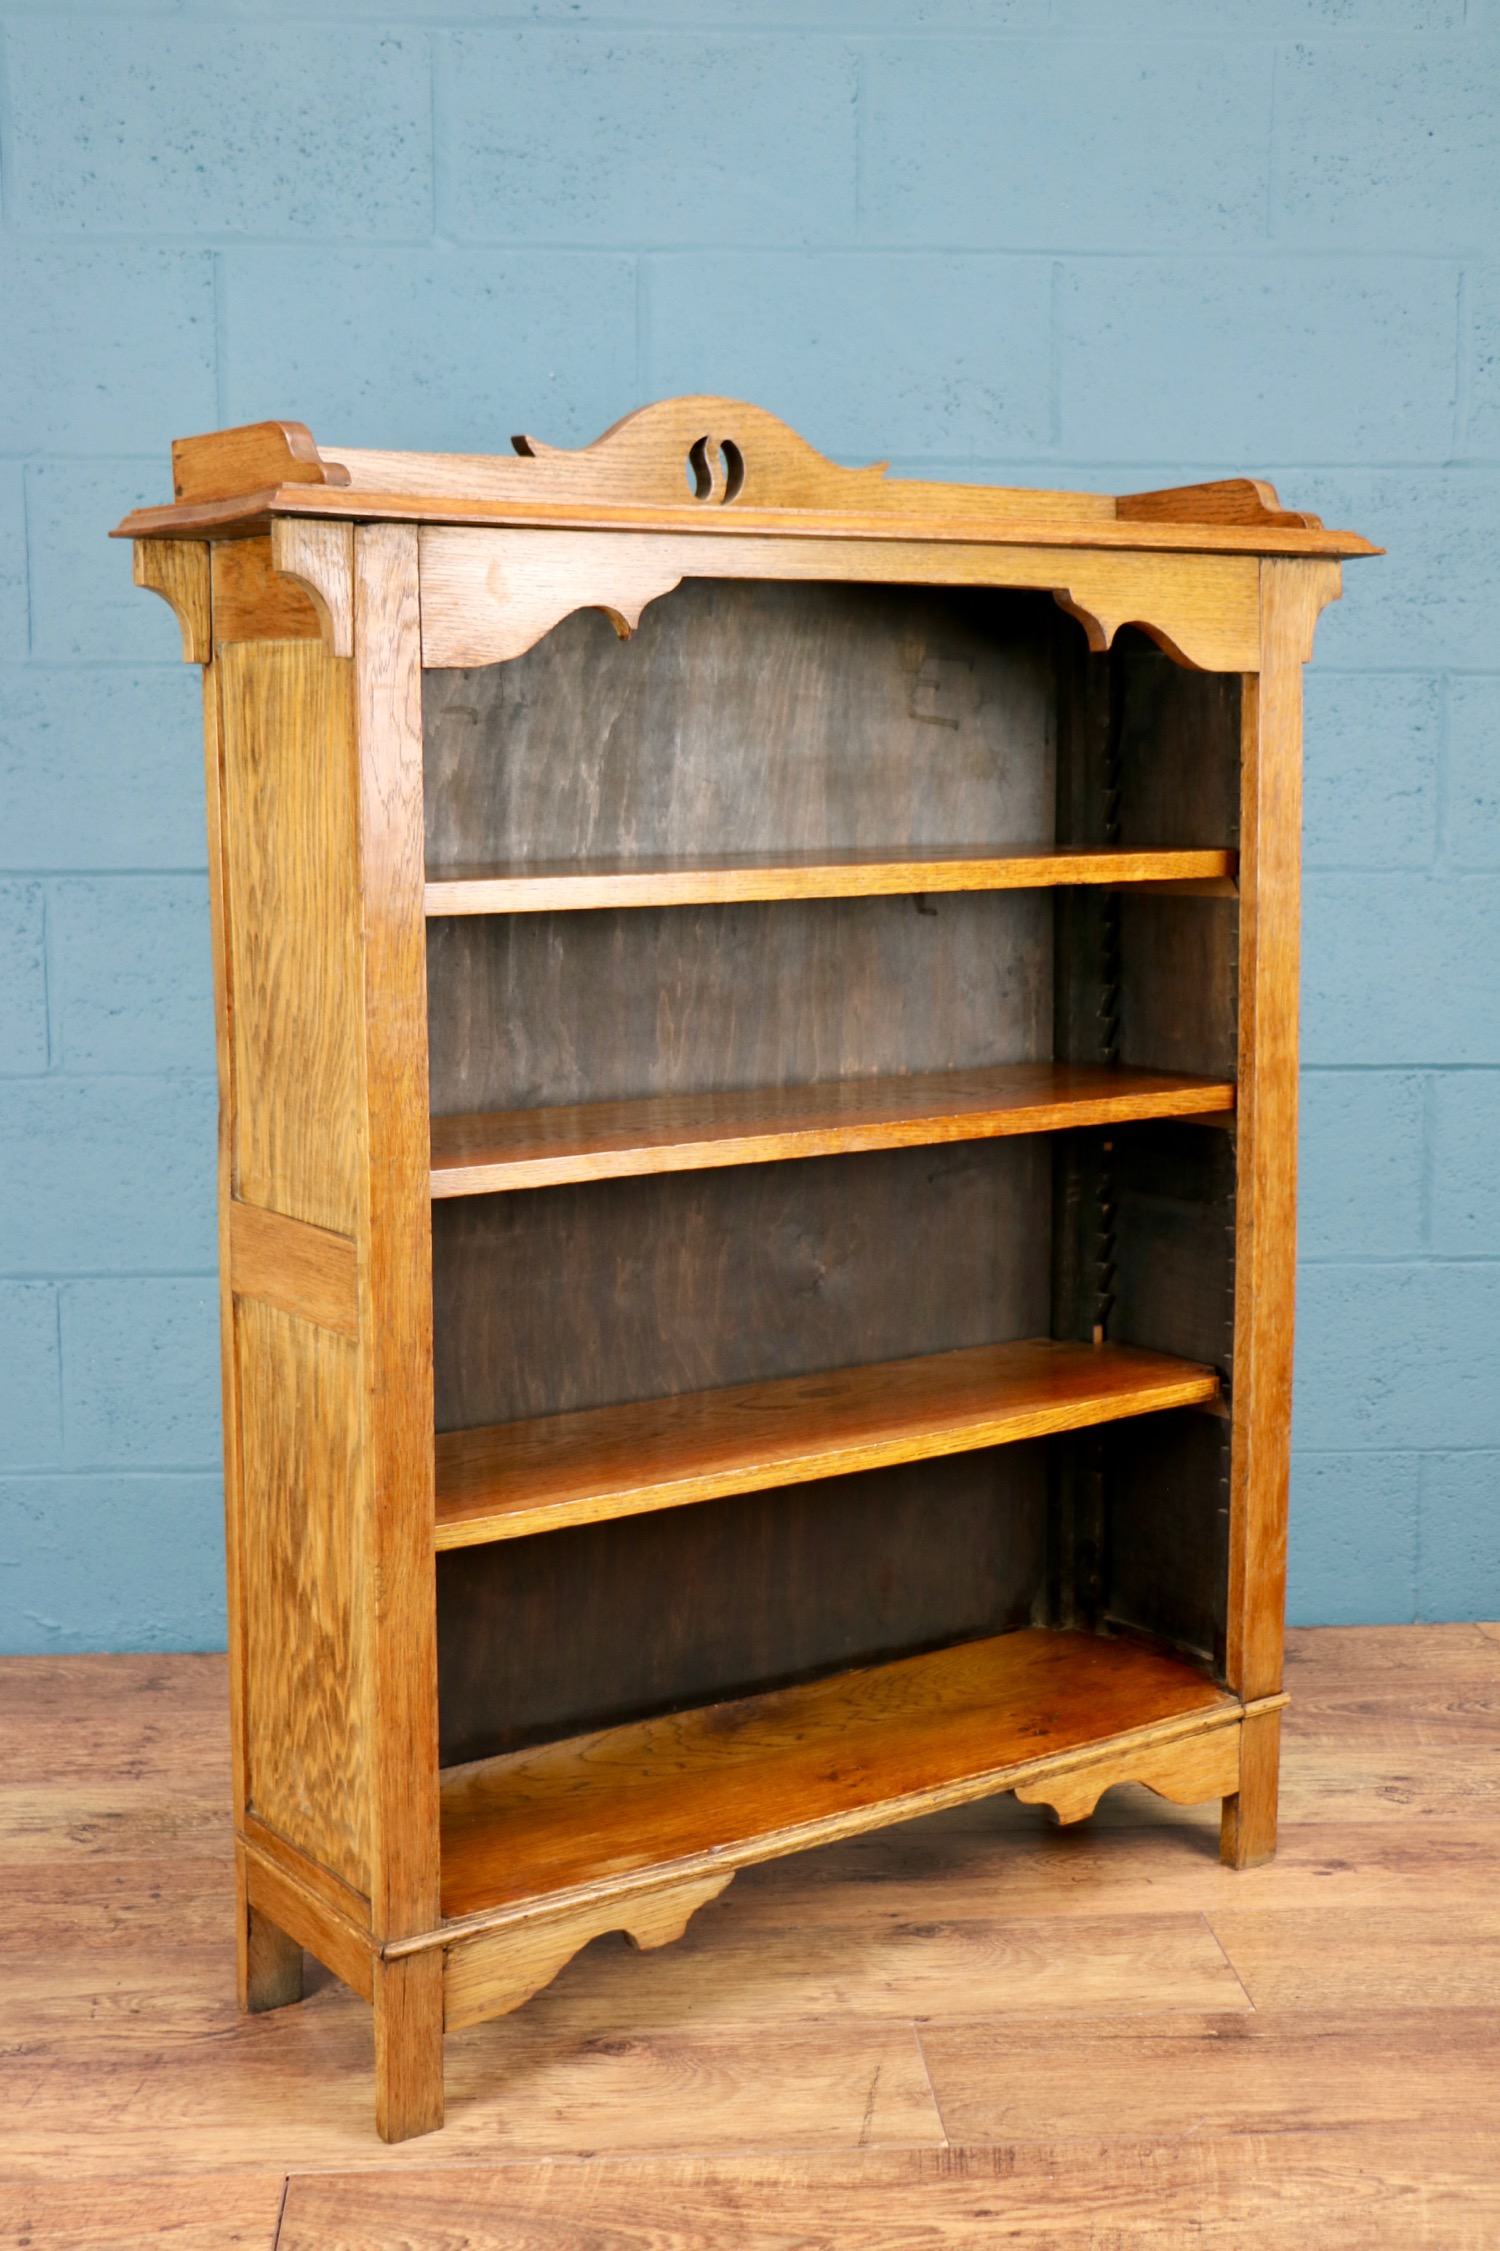 - An excellent bookcase. Very pleased with it, and it arrived promptly.Richard, London